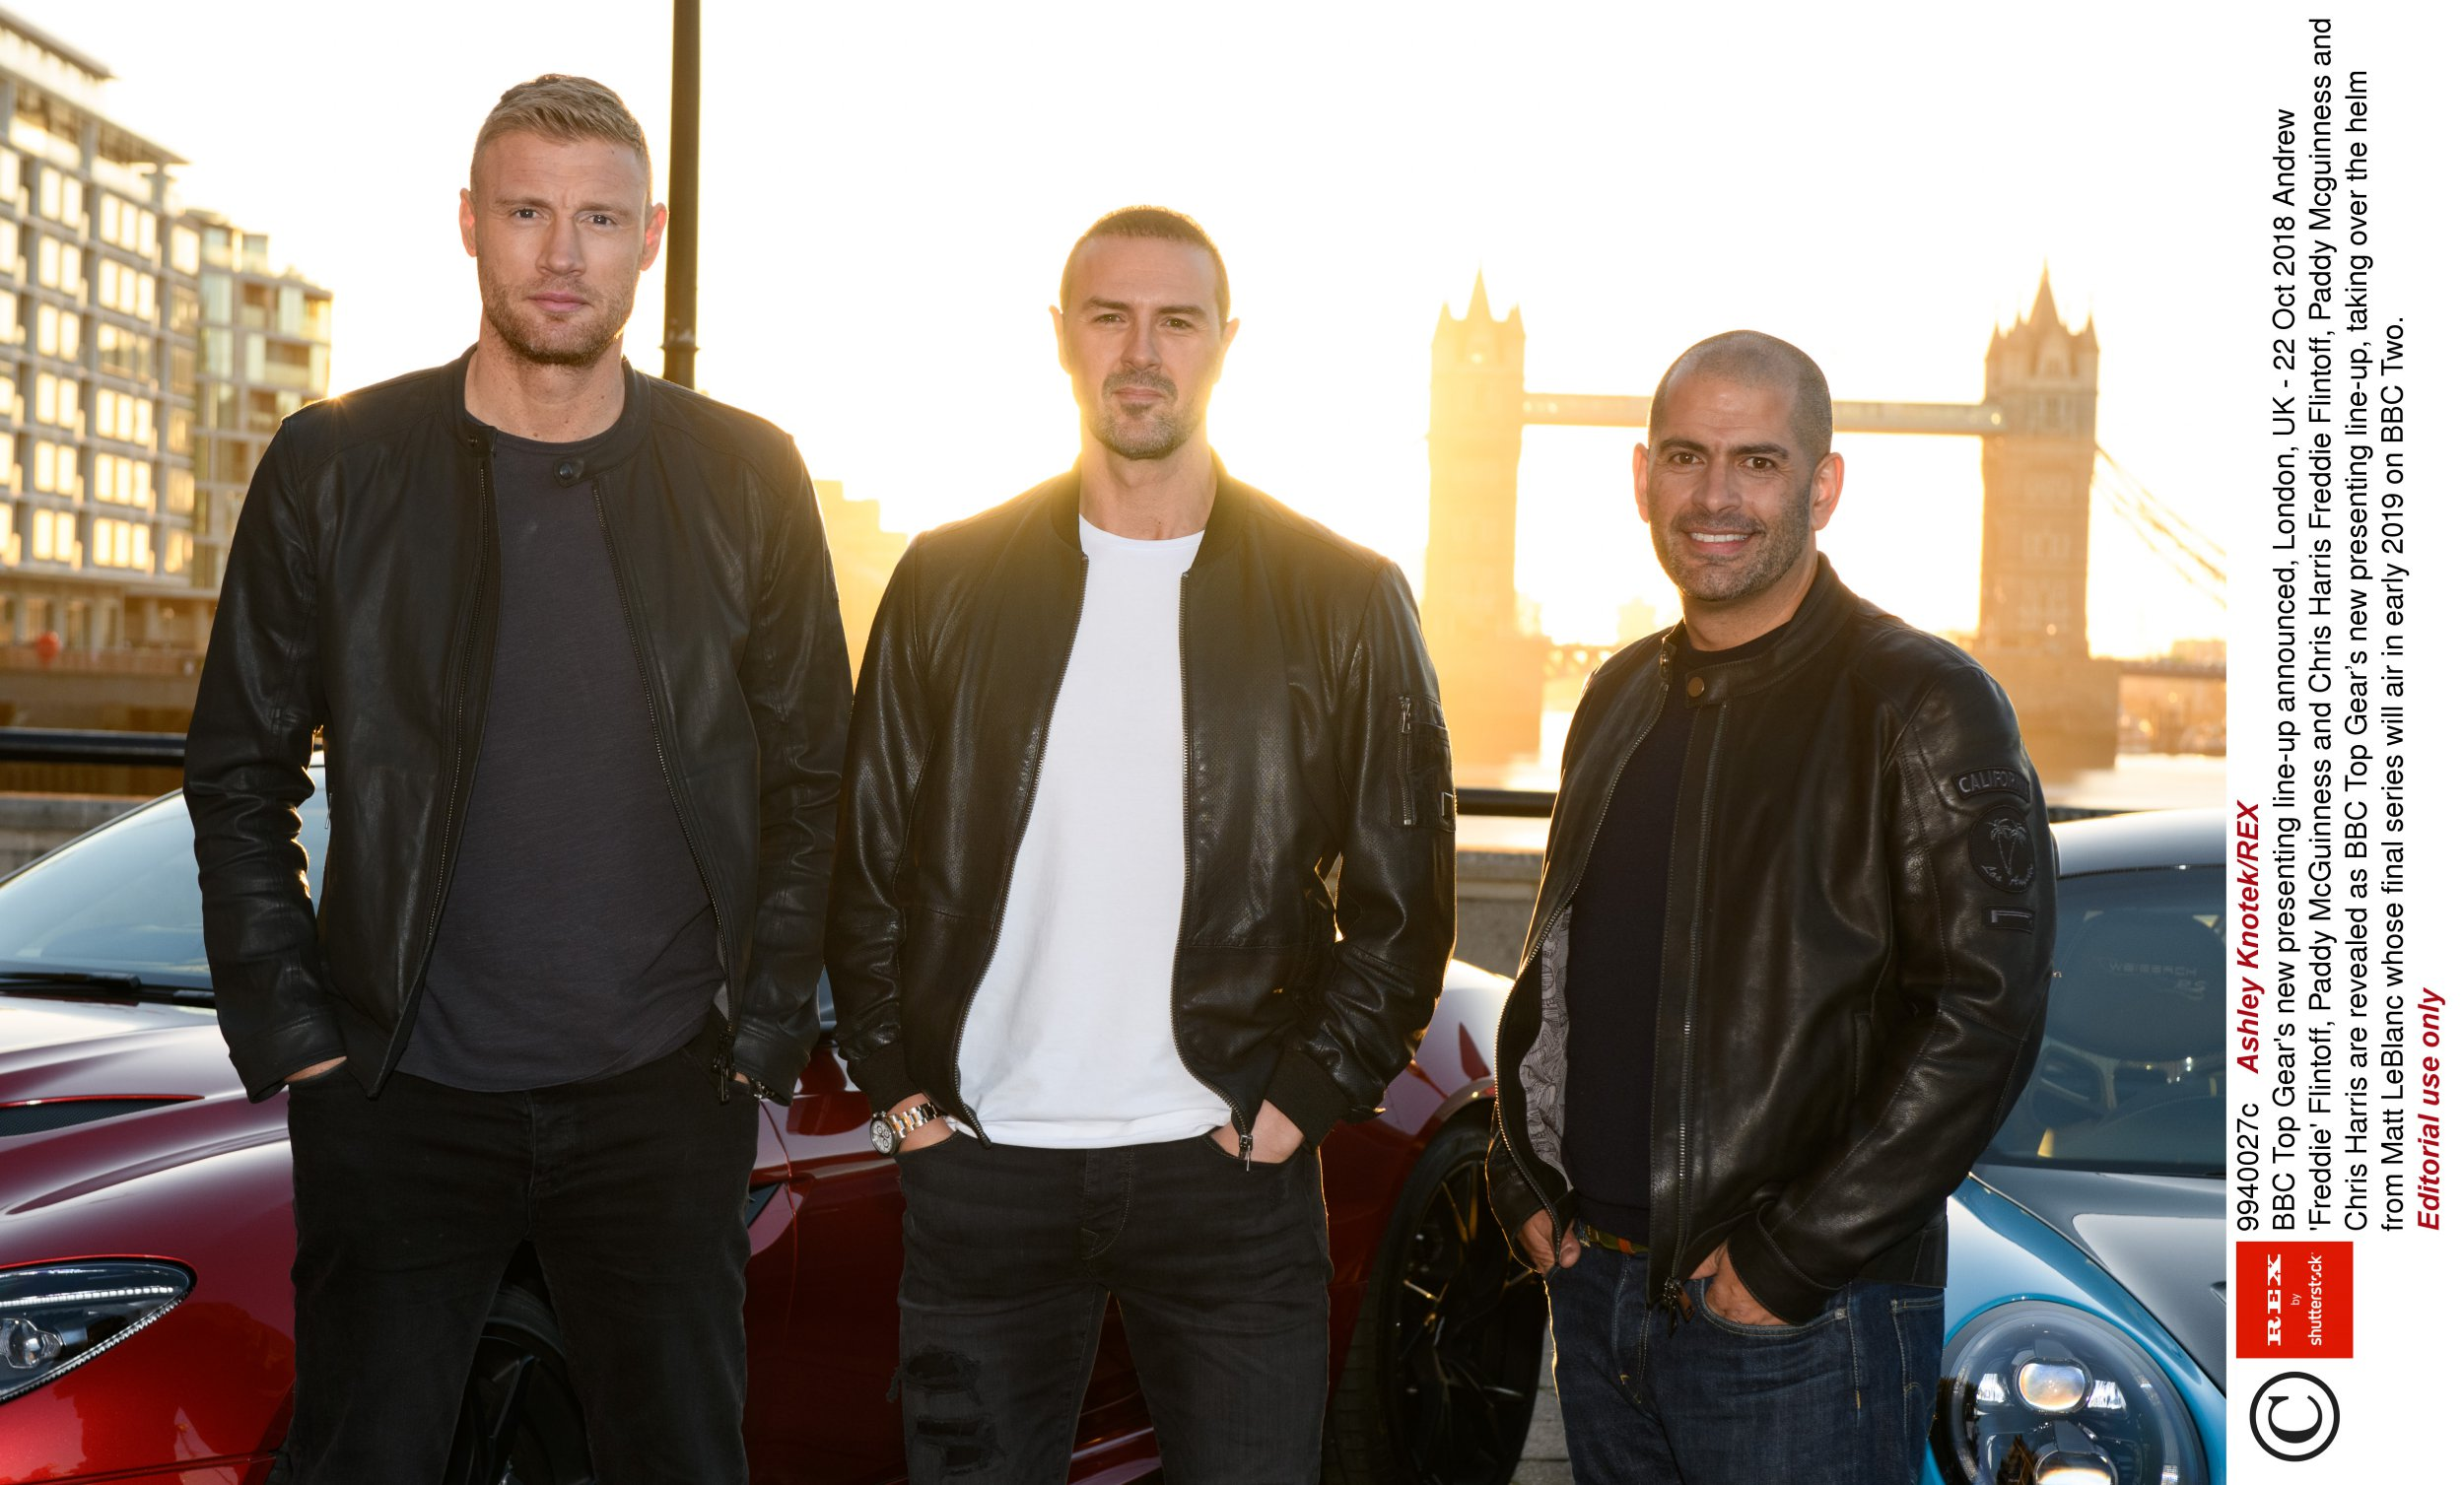 Top Gear's Paddy McGuinness gives sneak peak into upcoming series as host gets into 'first day of filming'